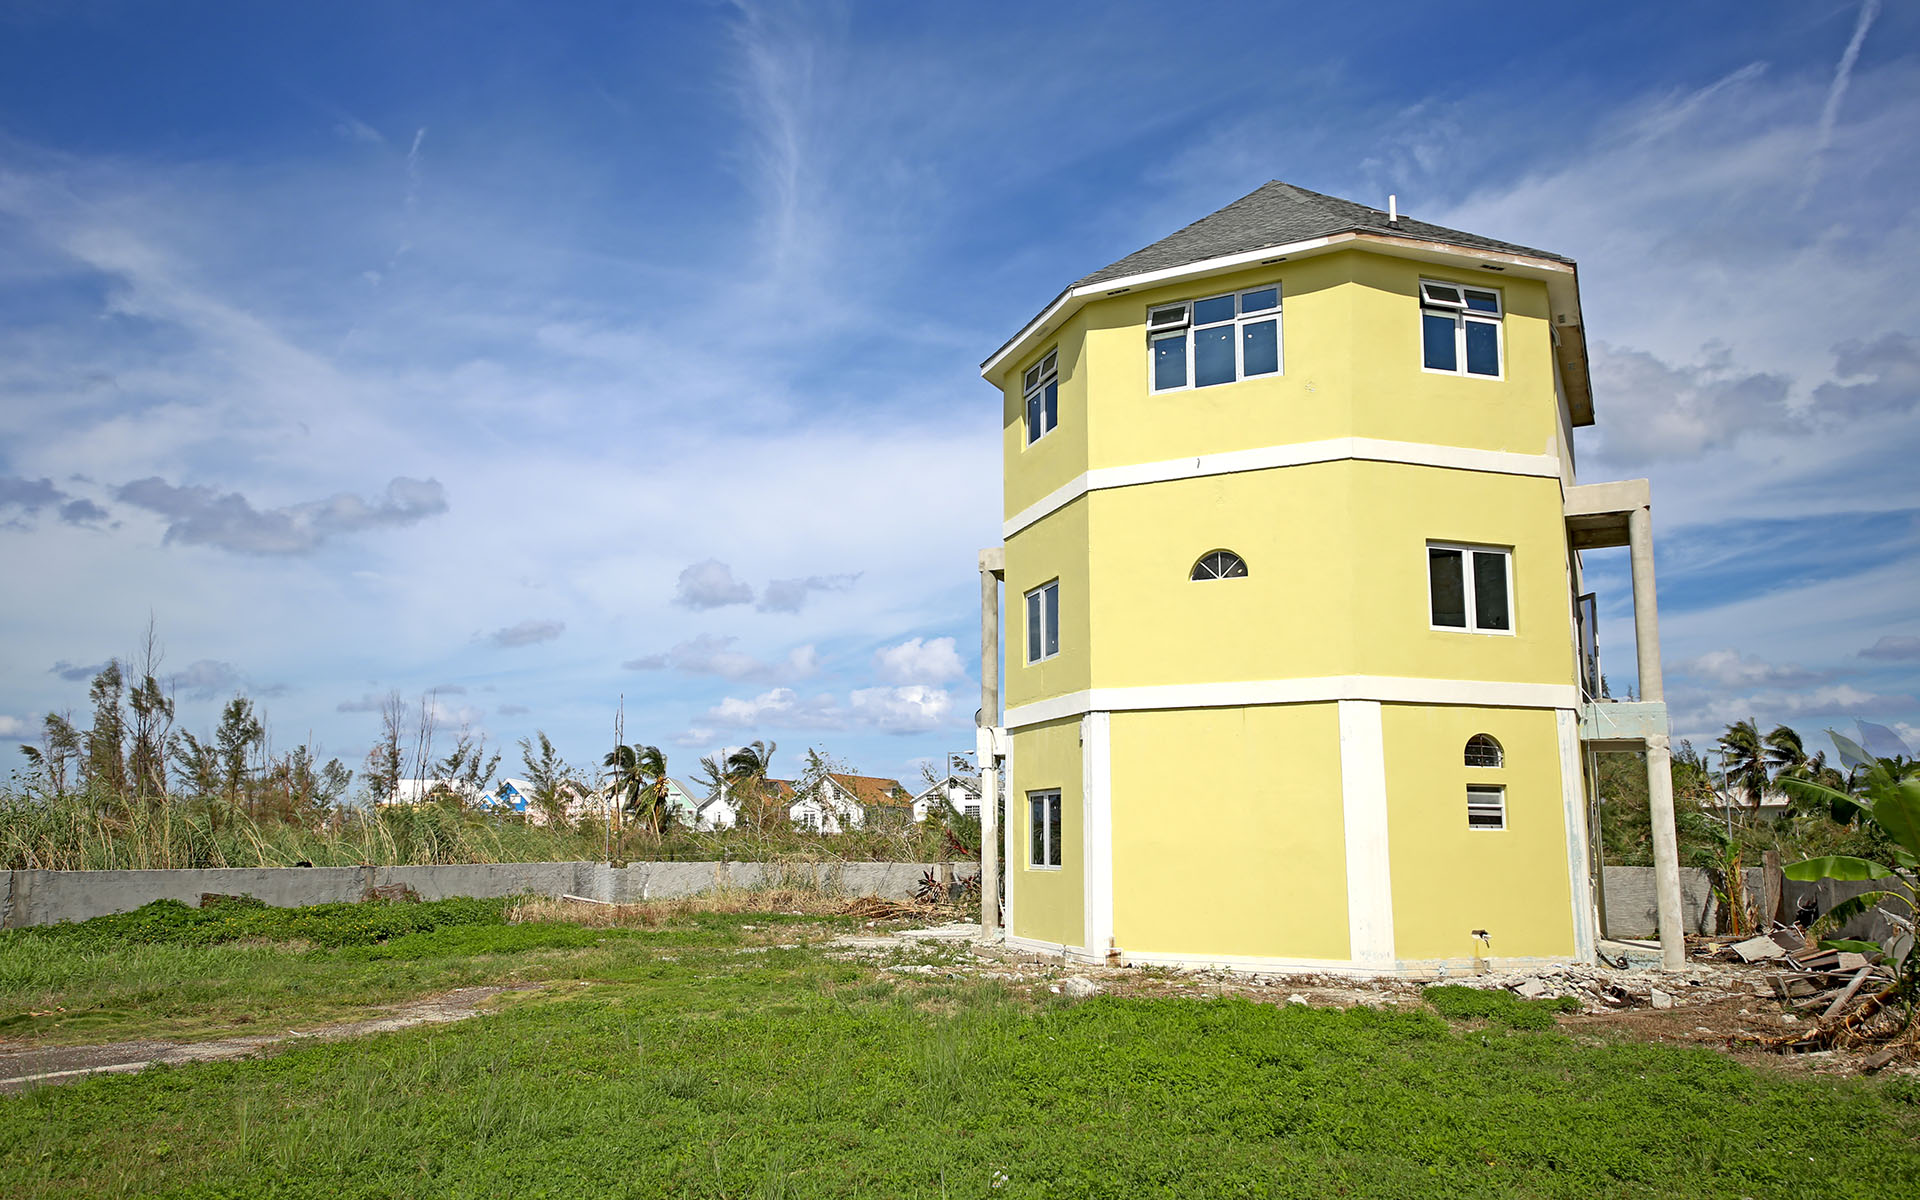 Single Family Home for Sale at #112 Westridge Estate Fixer Upper - MLS 28311 Westridge Estates, Westridge, Nassau And Paradise Island Bahamas